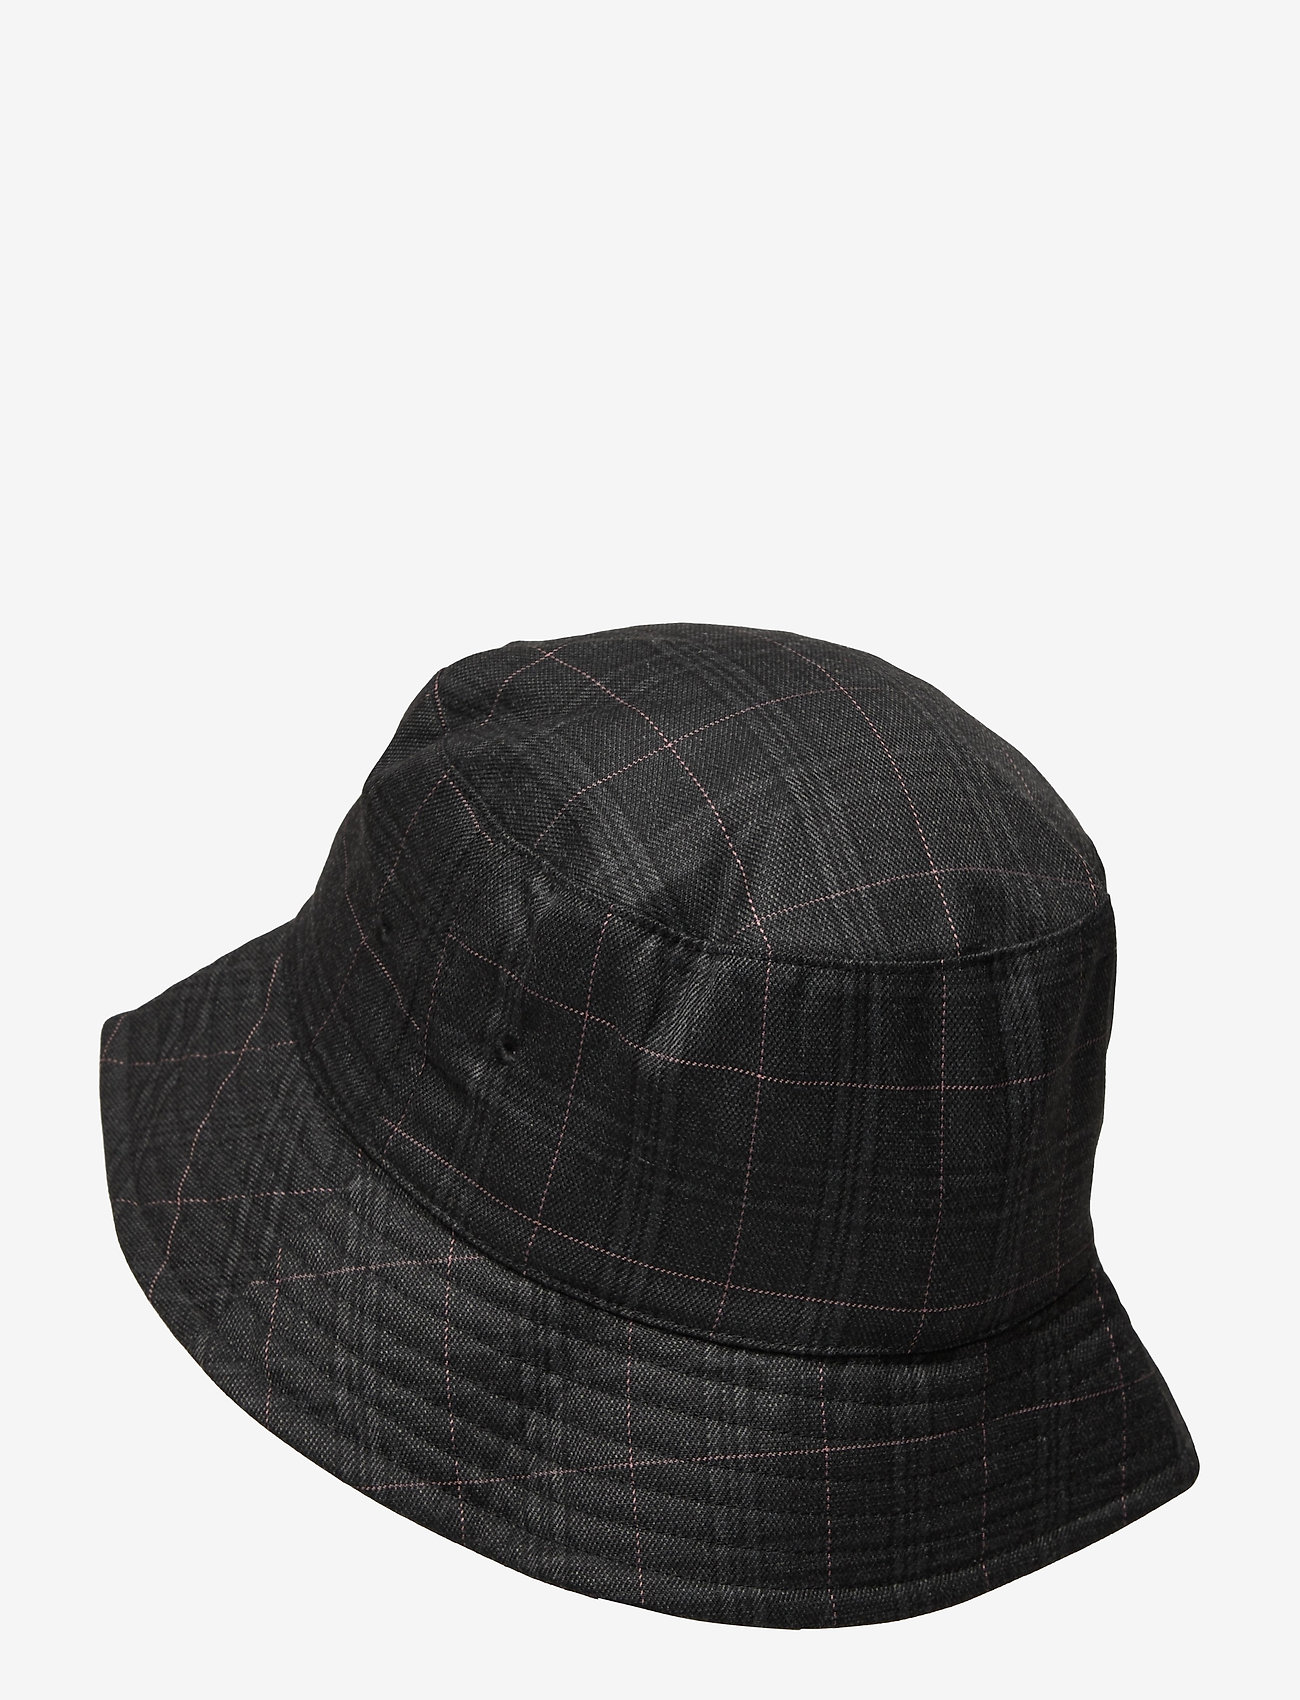 Hollister - HCo. GUYS ACCESSORIES - bucket hats - menswear print - 1